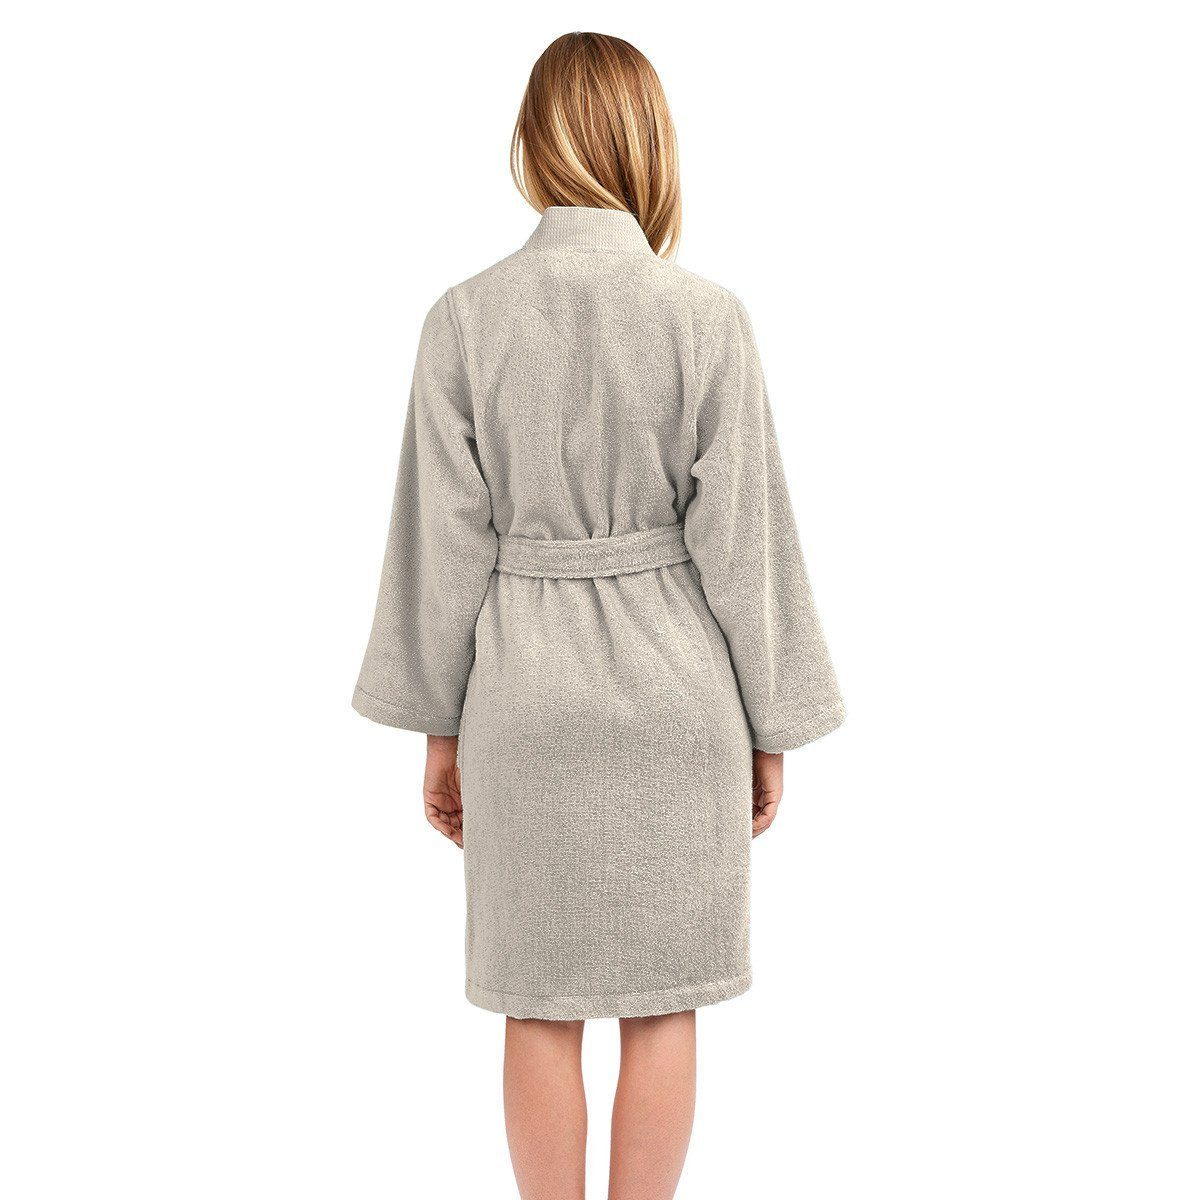 Astrée Kimono Pierre Bathrobe by Yves Delorme | Fig Linens - Tan robe, back